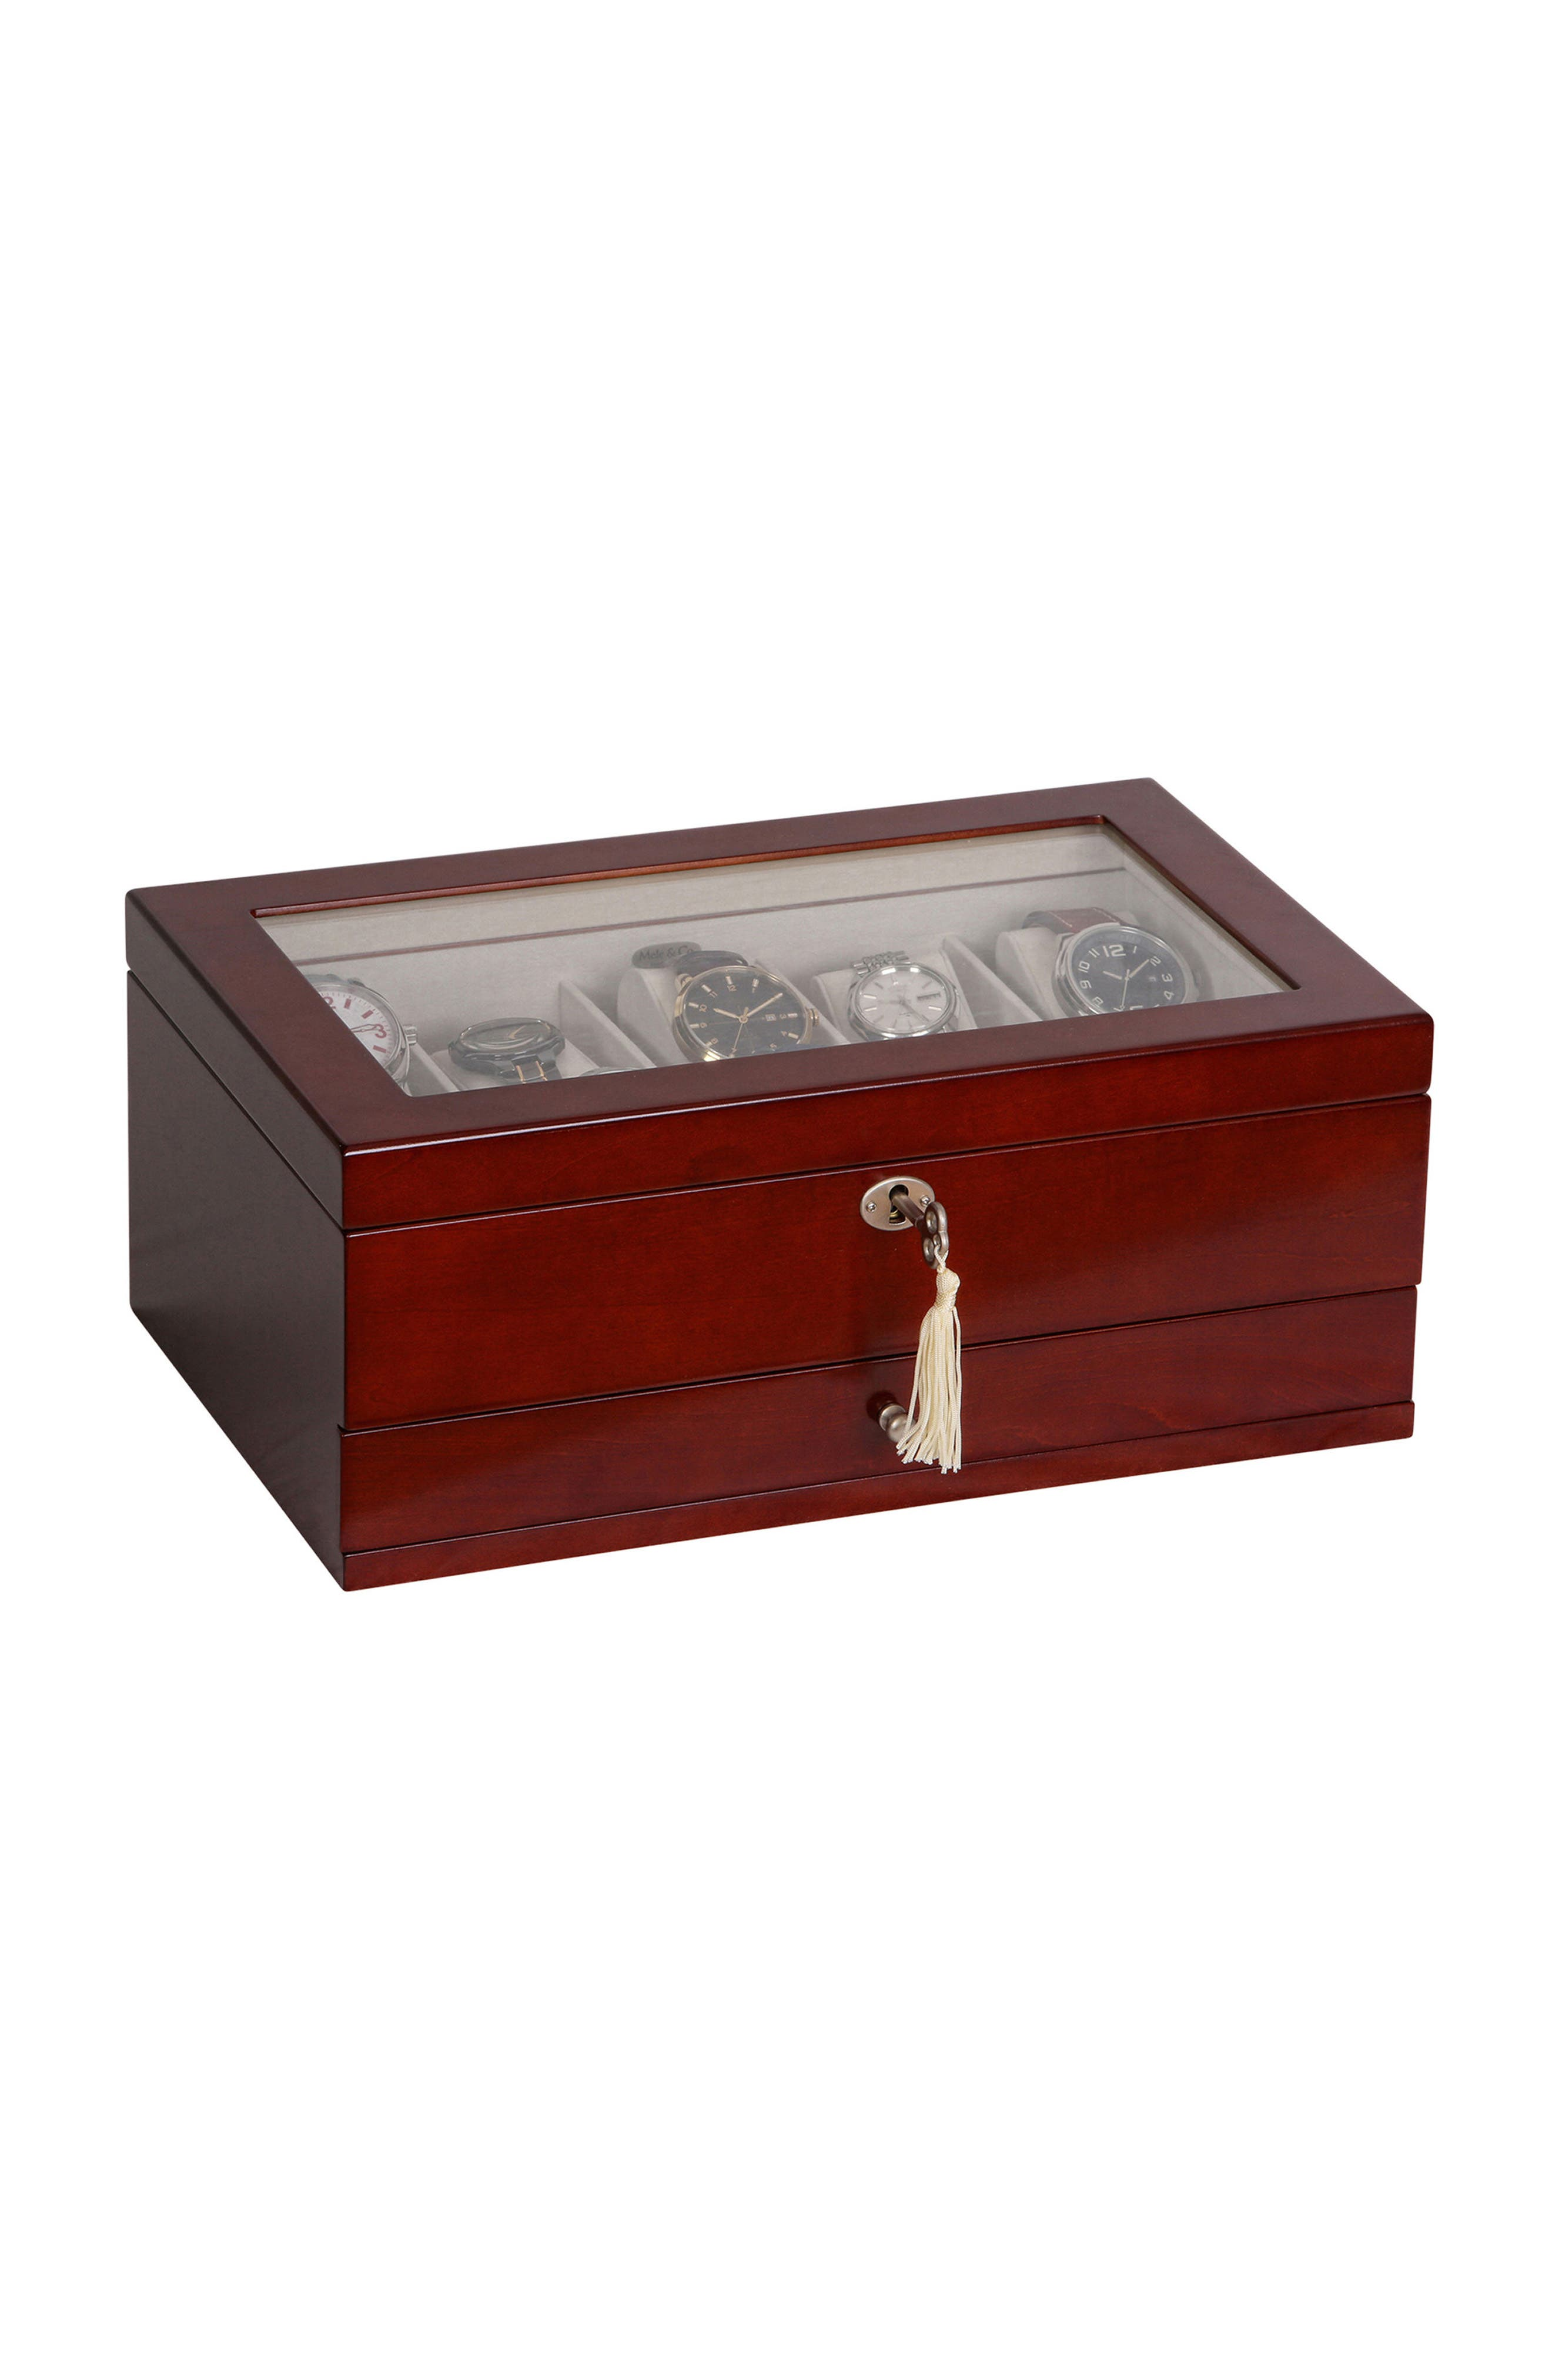 Alternate Image 1 Selected - Mele & Co. Christo Locking Watch & Jewelry Box